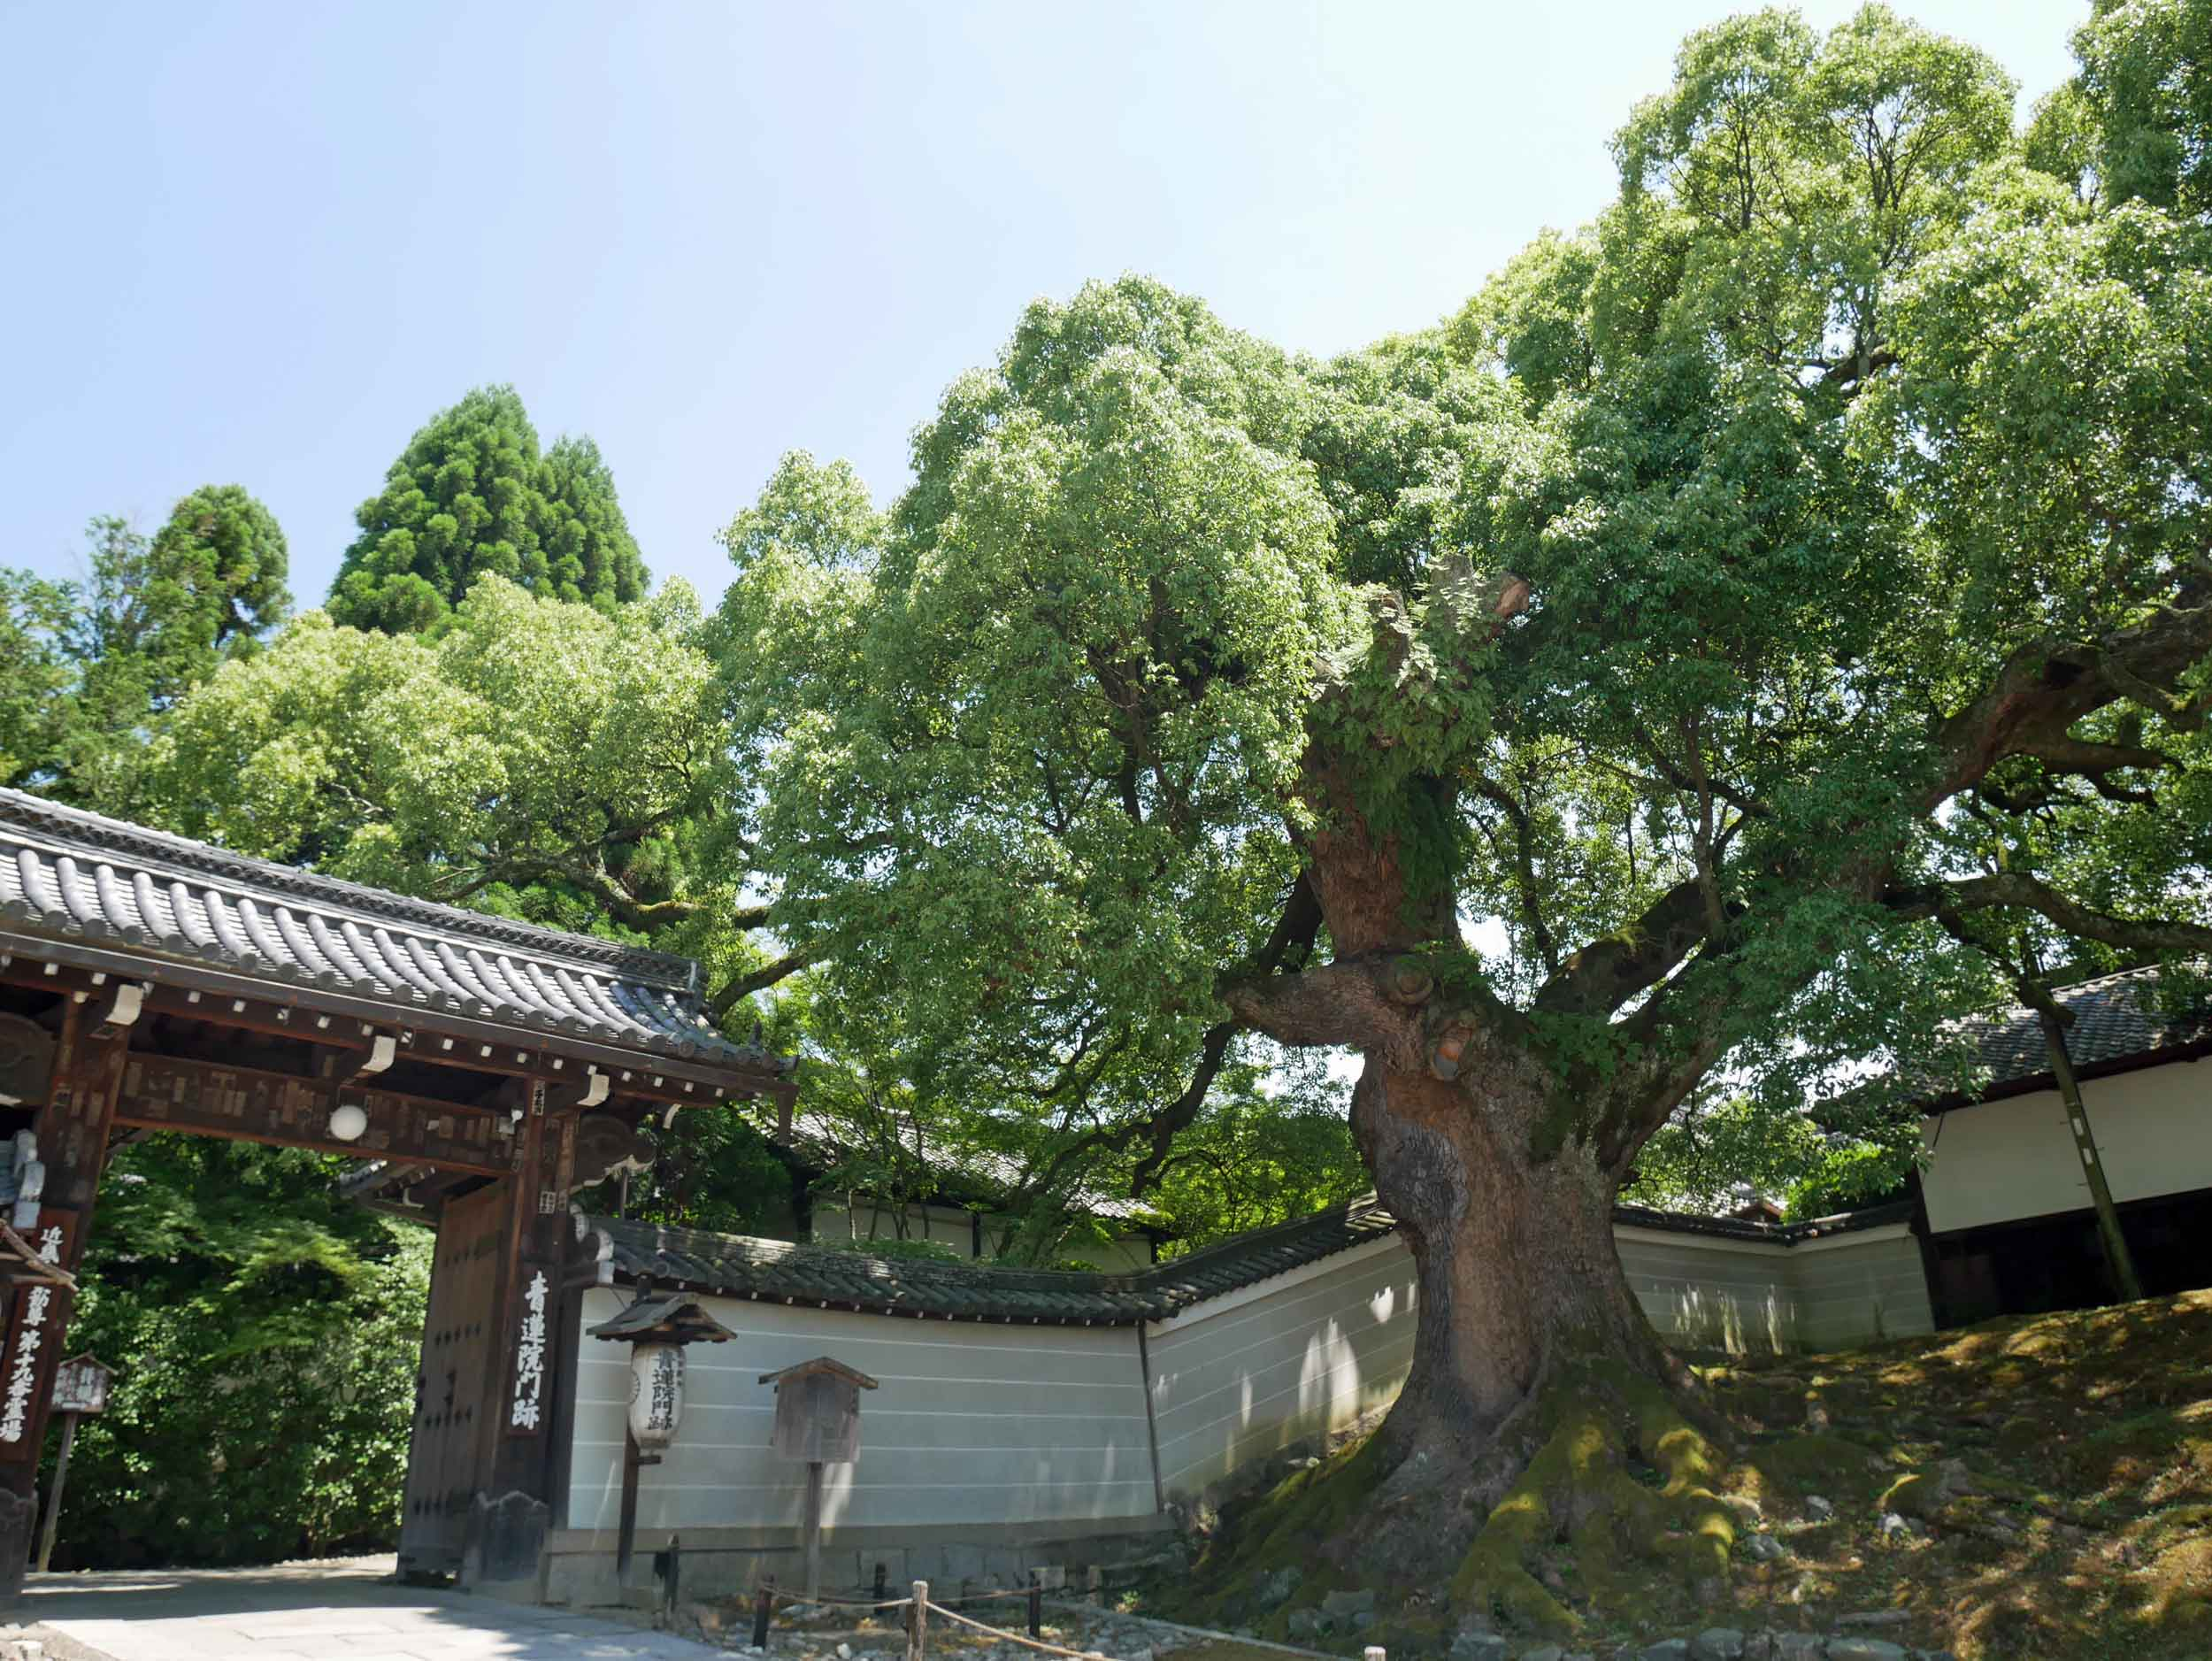 One of the oldest are the 800 year old camphor trees that line the complex walls.